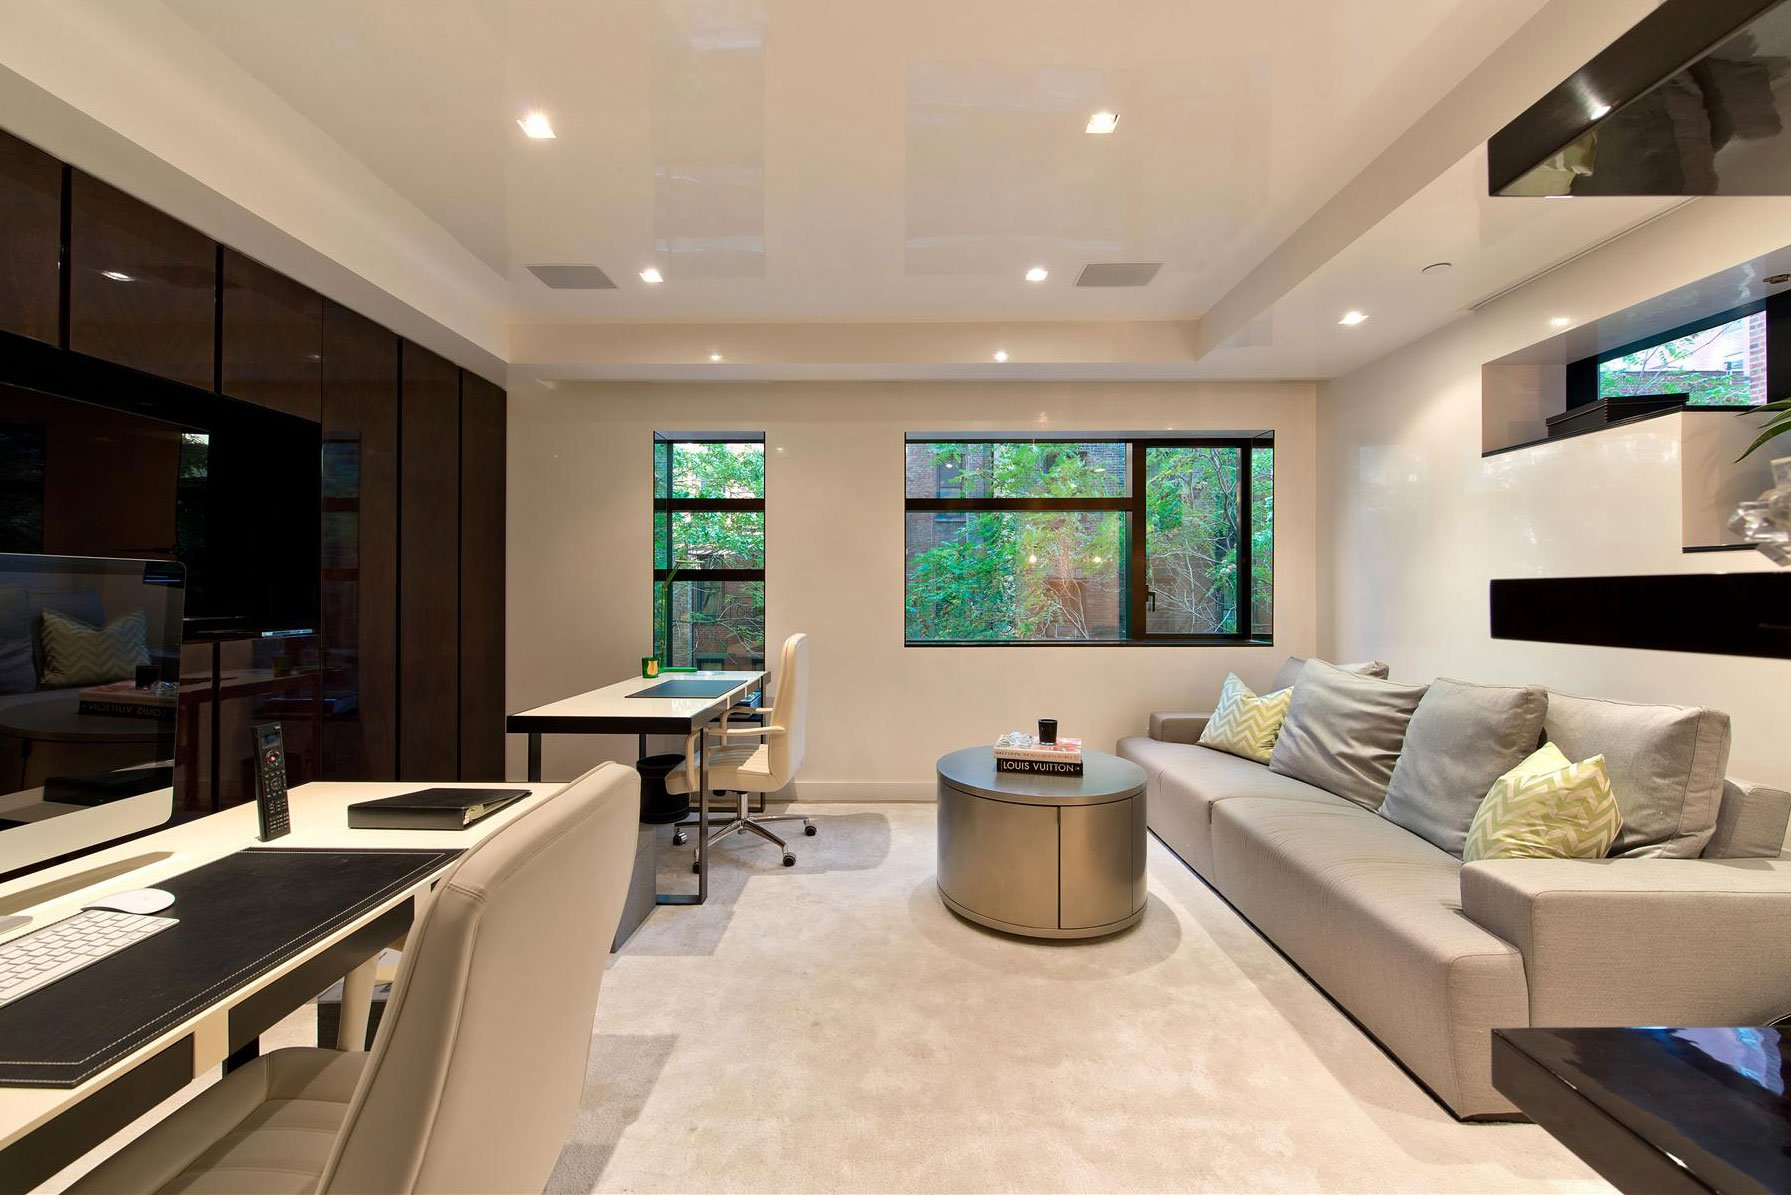 Stunning modern townhouse in new york caandesign for Decorating townhouse living room ideas